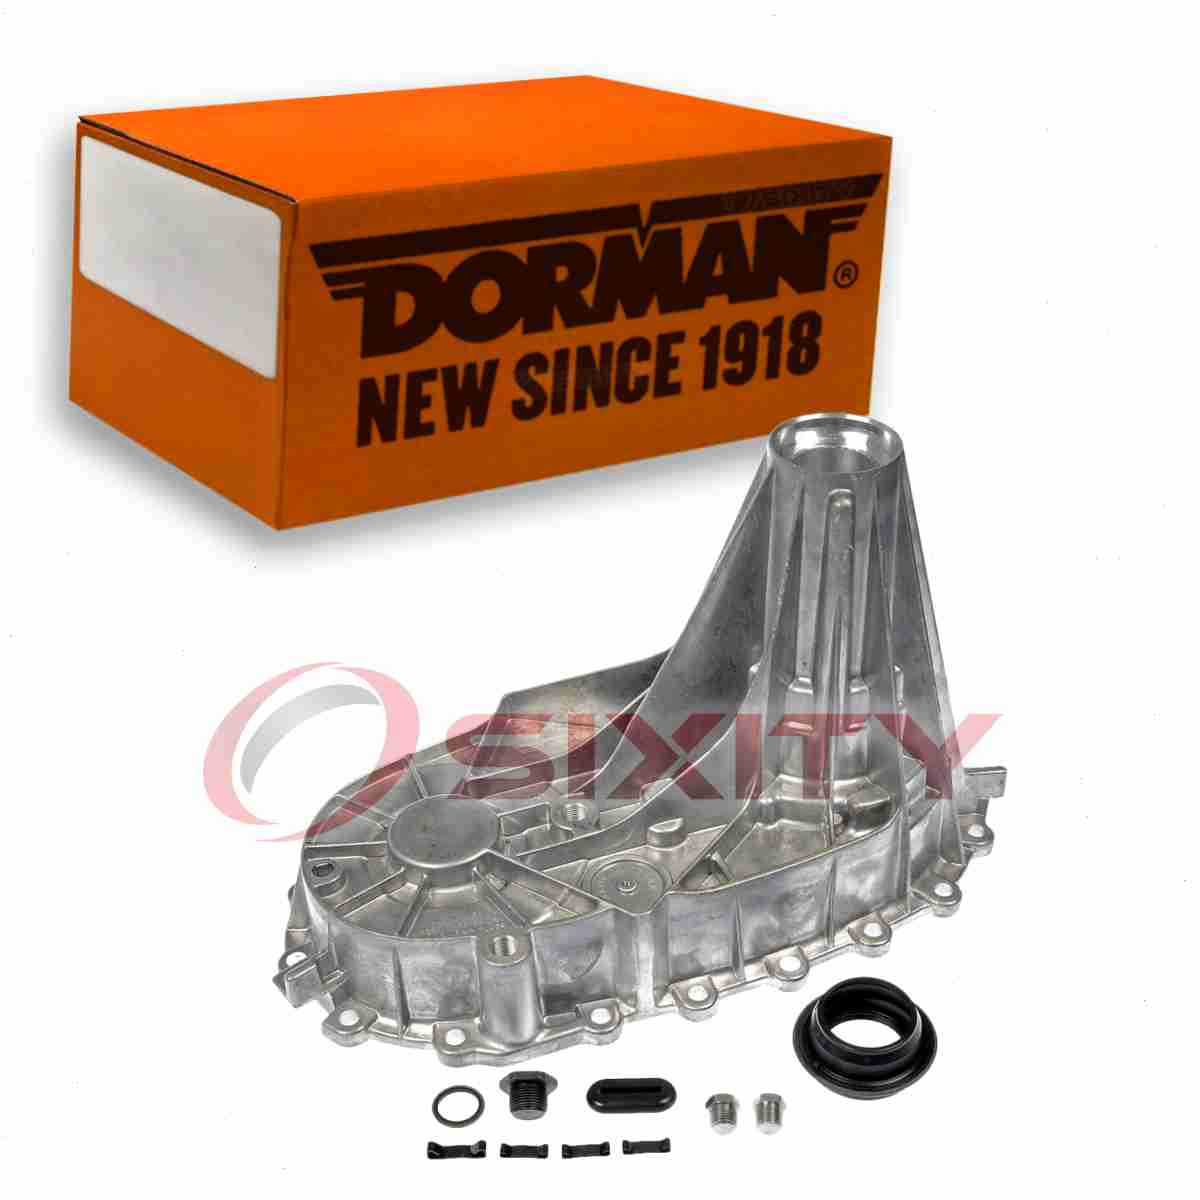 Dorman Oe Solutions 917 561 Transfer Case Housing For 12473226 2003 Gmc Identification Products Is An Unmatched Leader In Supplying Automotive And Heavy Duty Replacement Parts Including Hardware Brake Fasteners To The